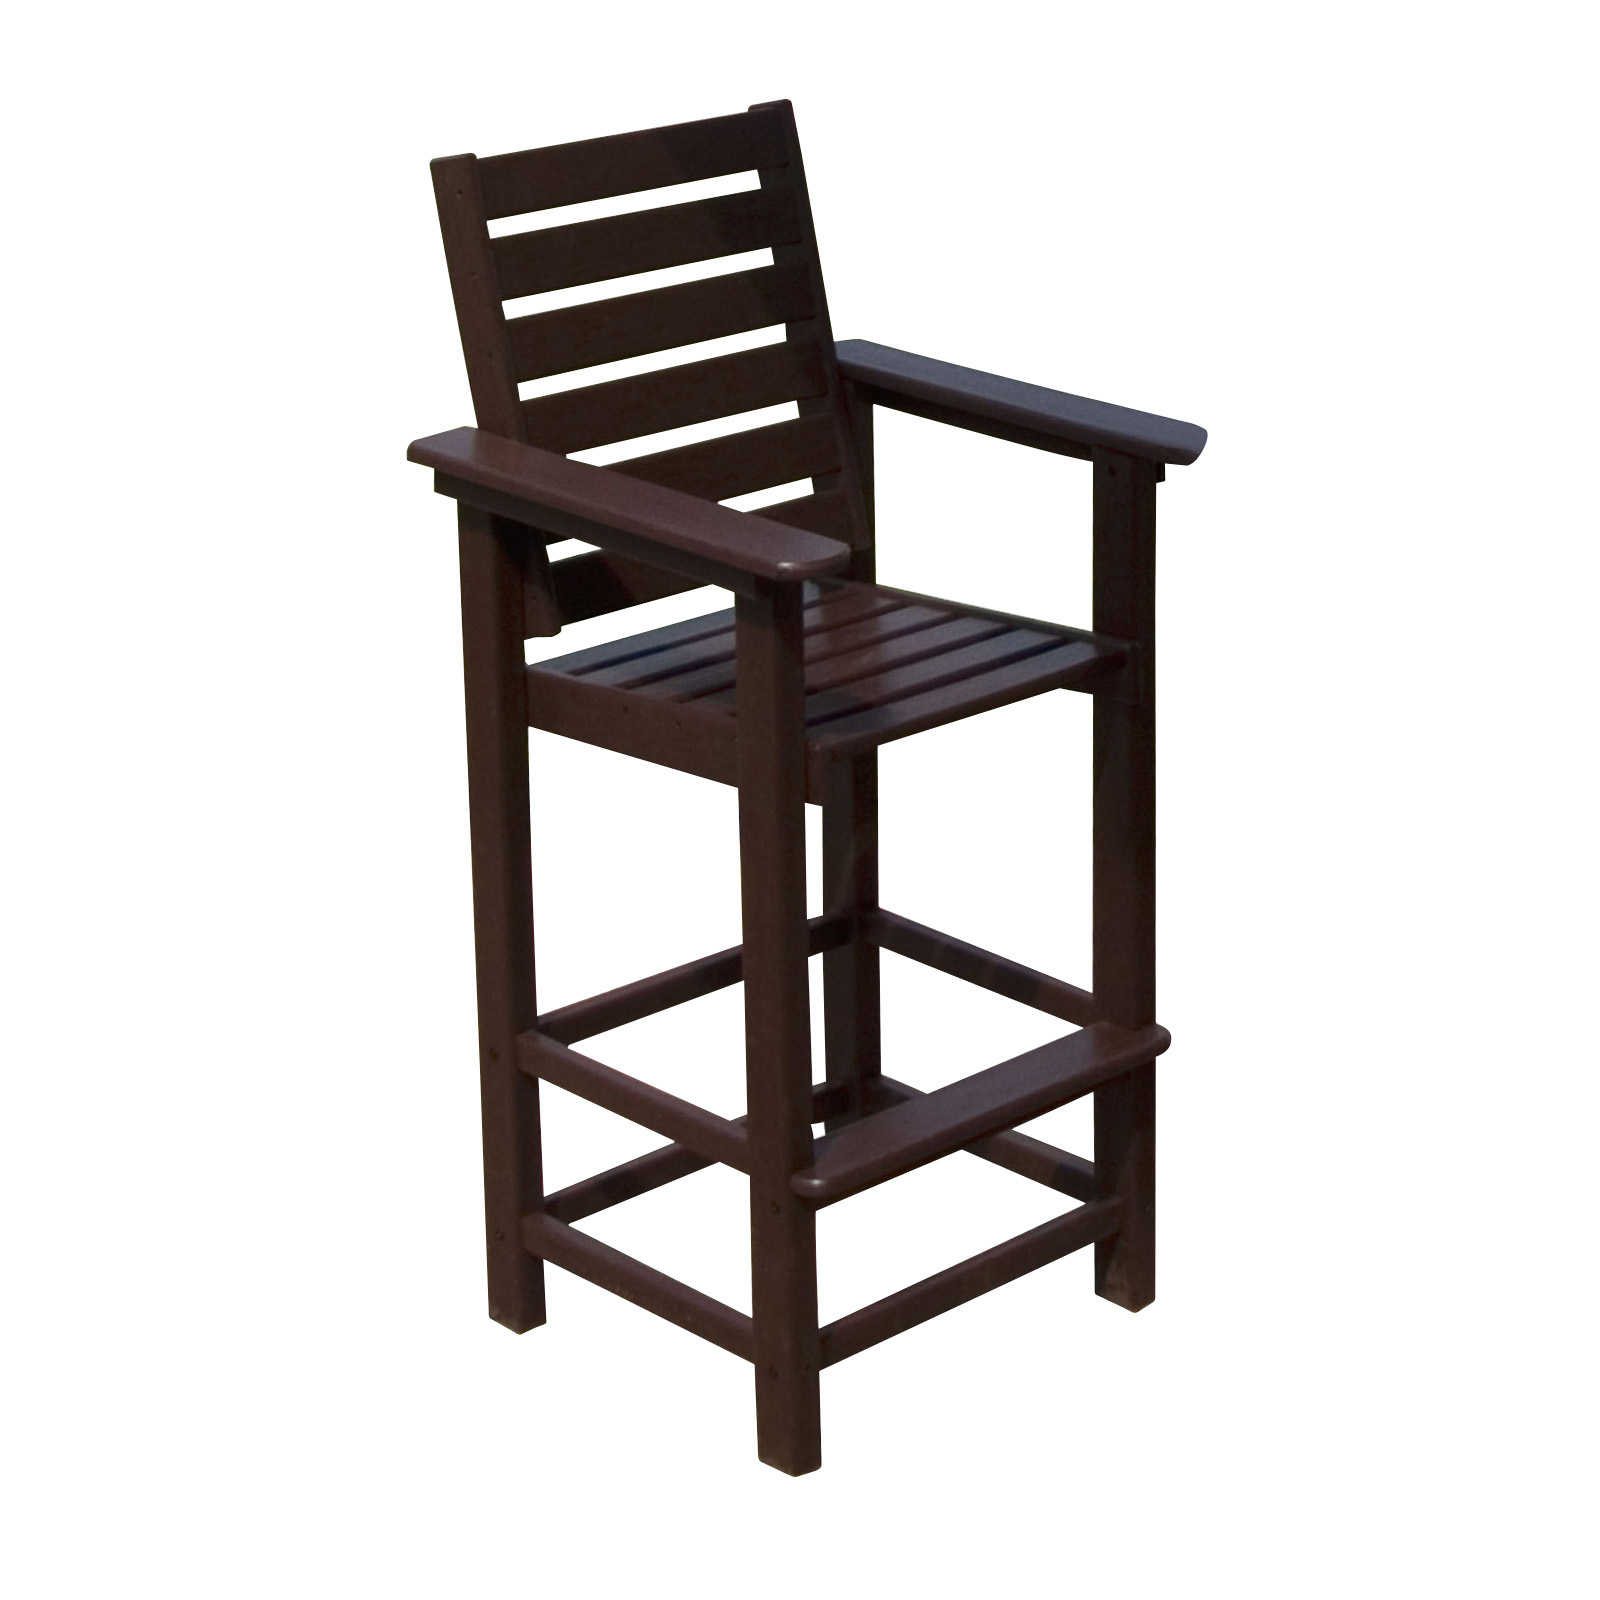 tall patio chairs with arms double hang around chair polywood captain recycled plastic 29 5 in bar stool